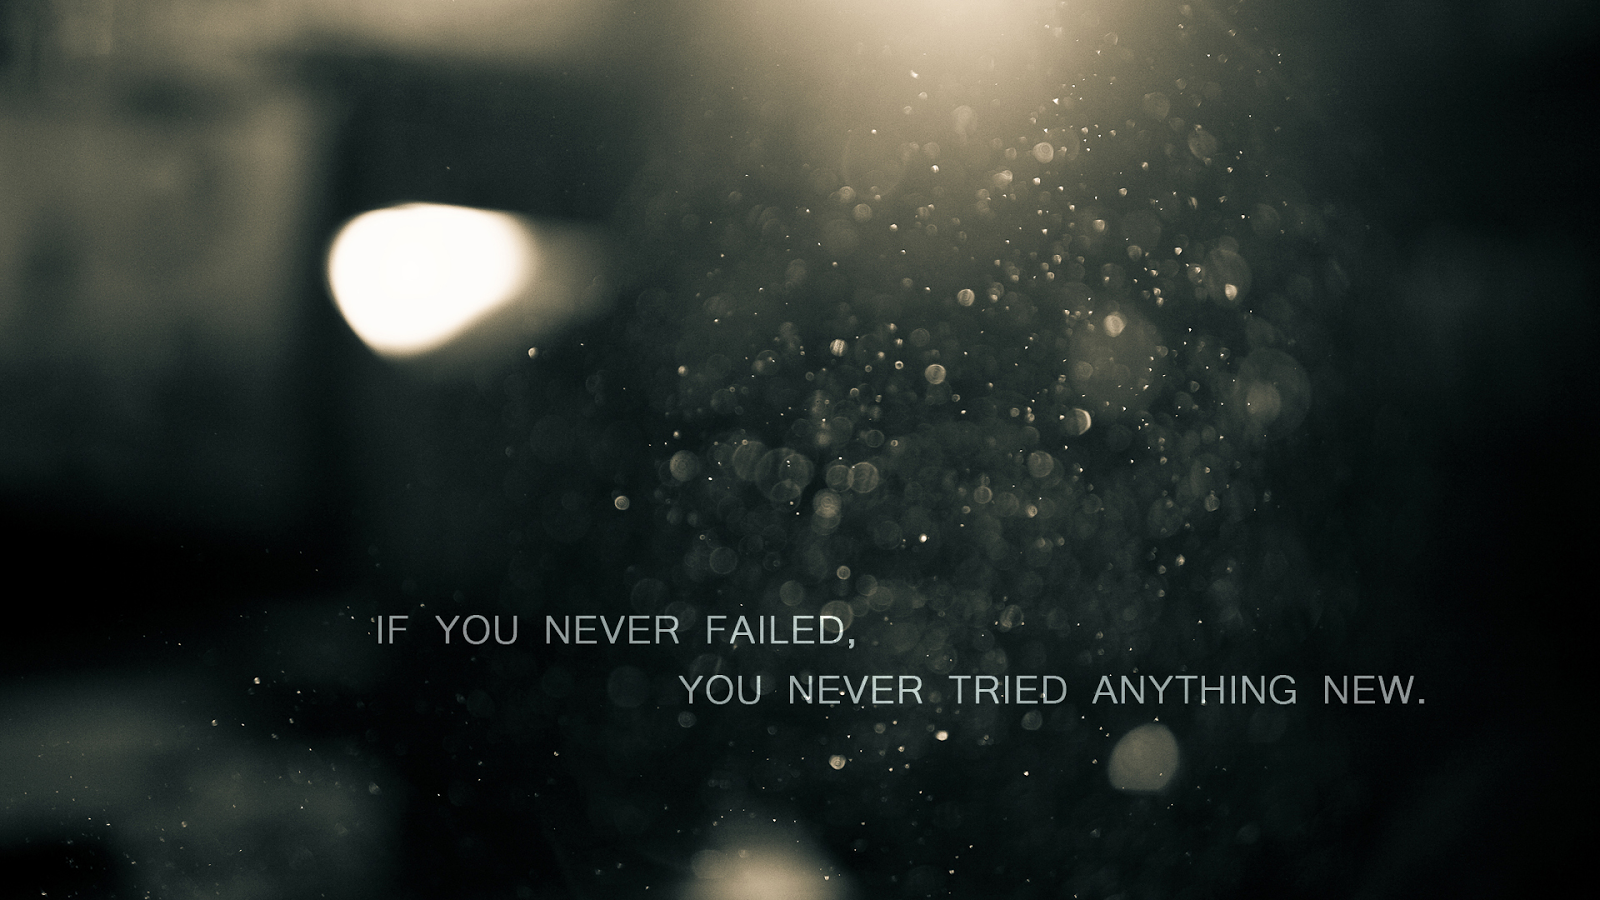 Socrates Wallpaper Quotes 80 Motivational Wallpapers For Your Desktop To Boost Your